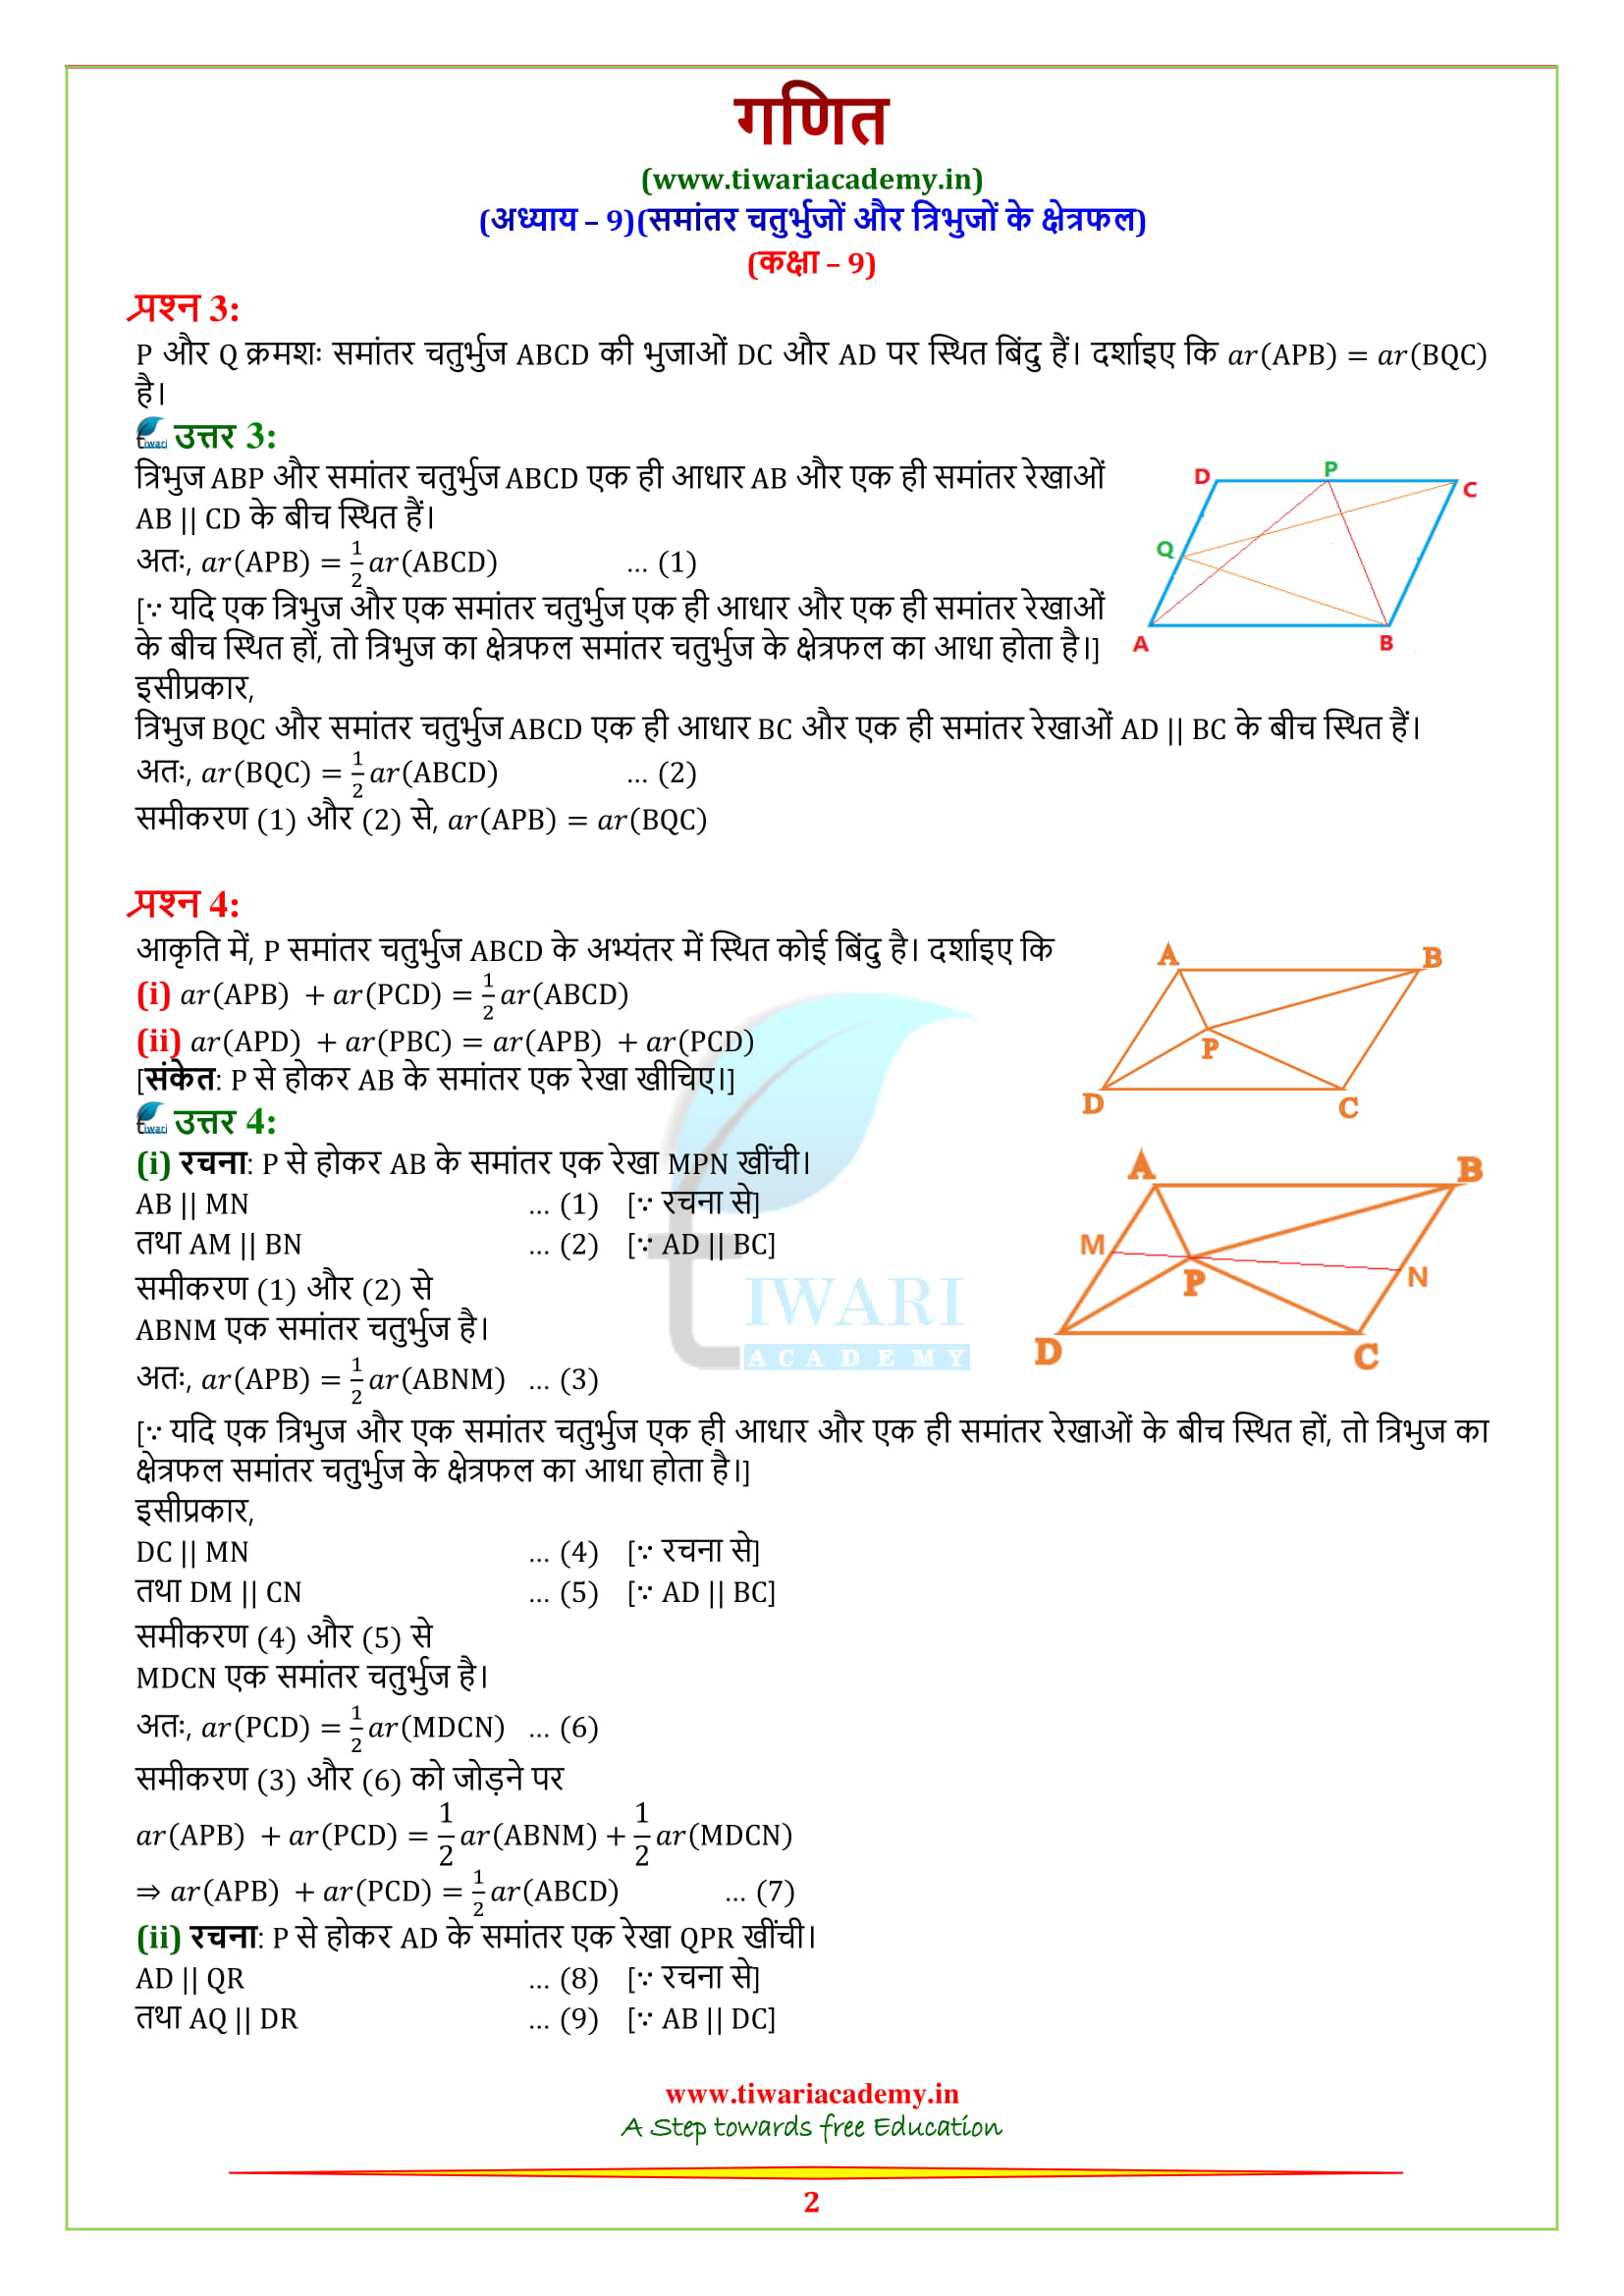 9 Maths exercise 9.2 solutions for up and mp board high school